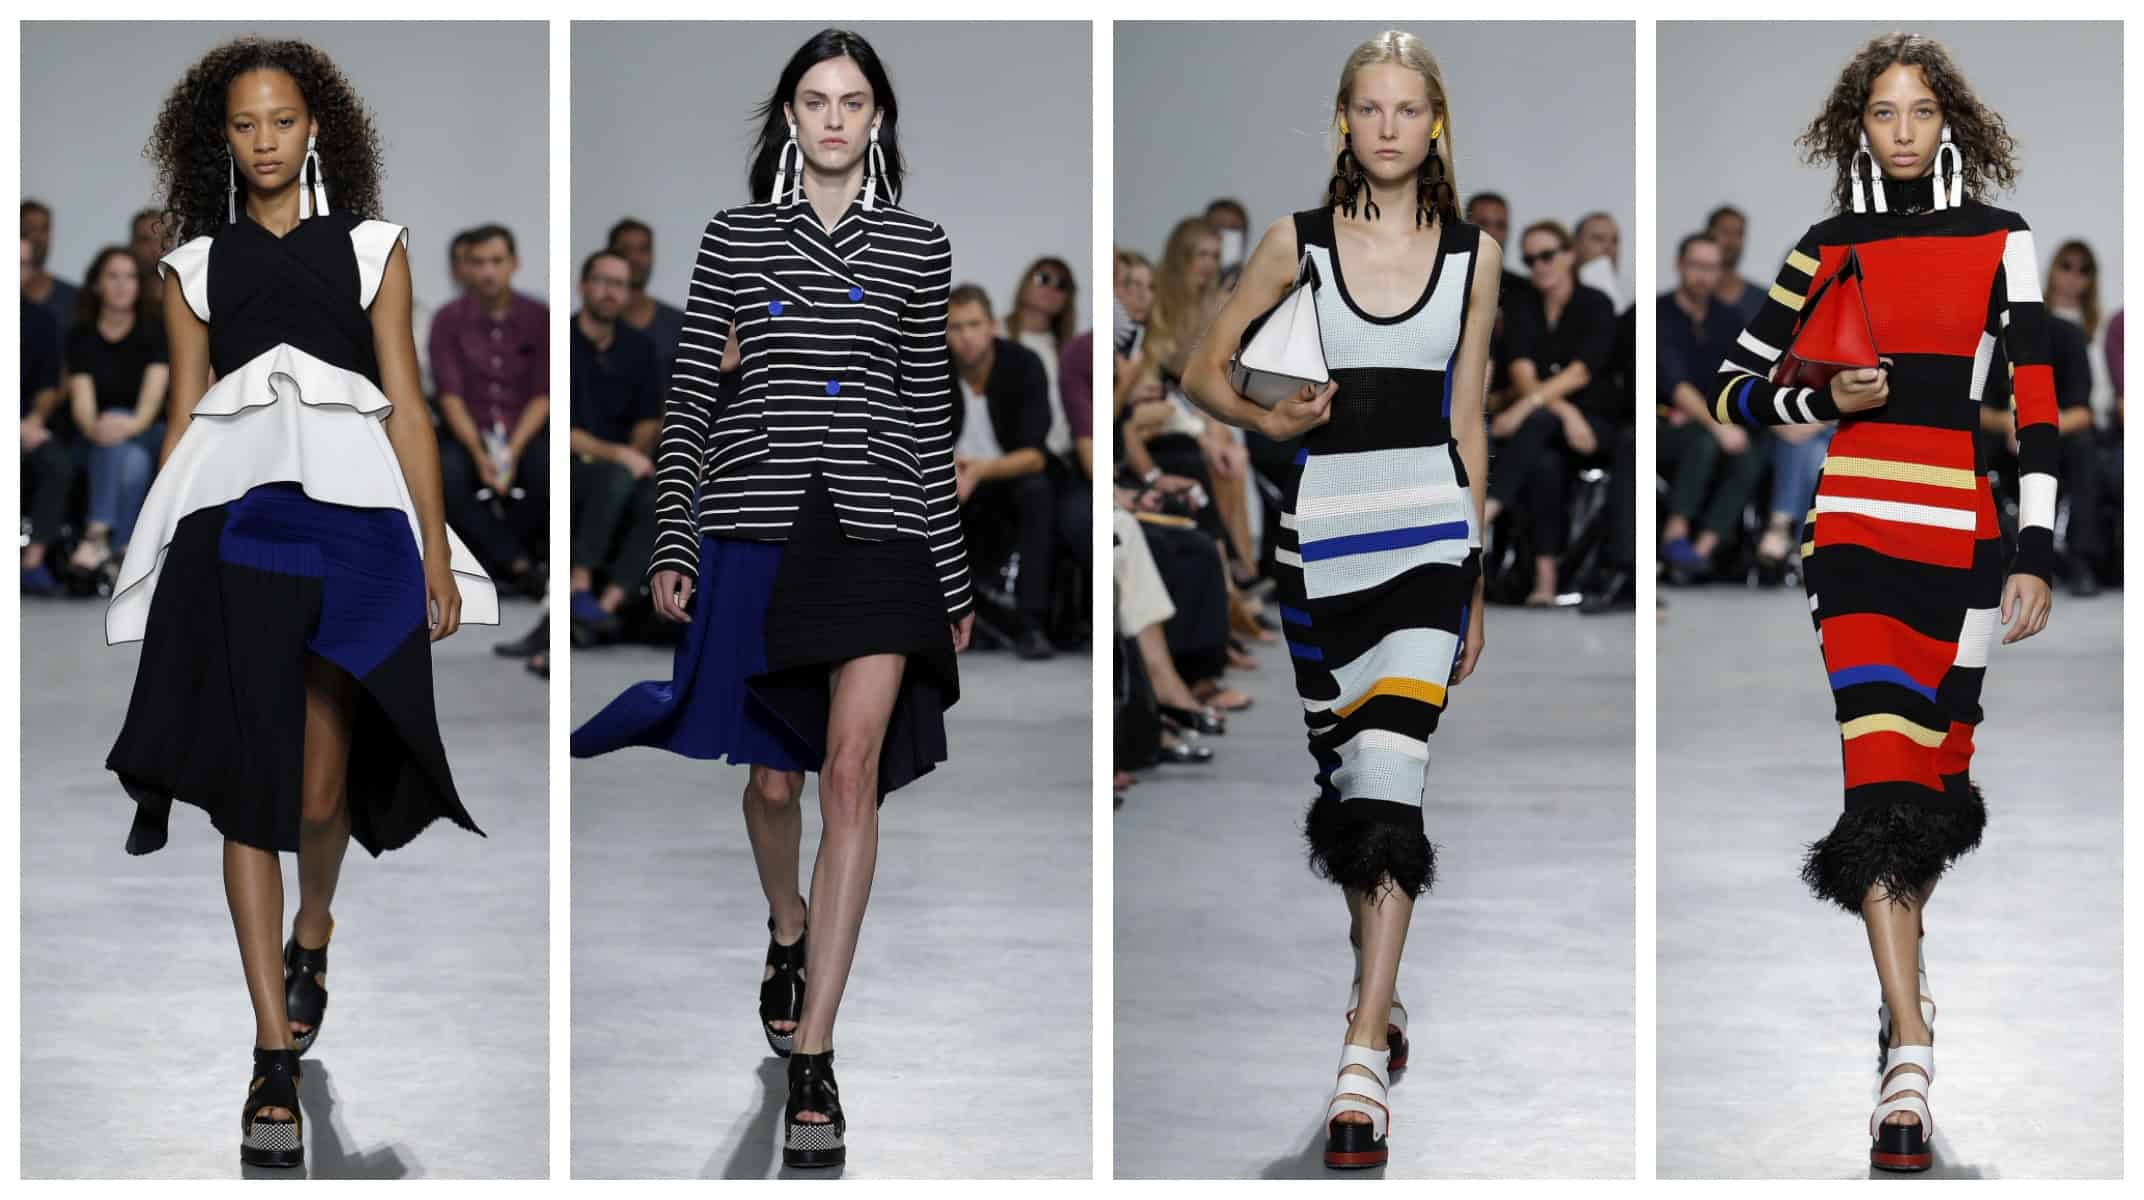 New York Fashion Week Spring 2017 - Proenza Schouler